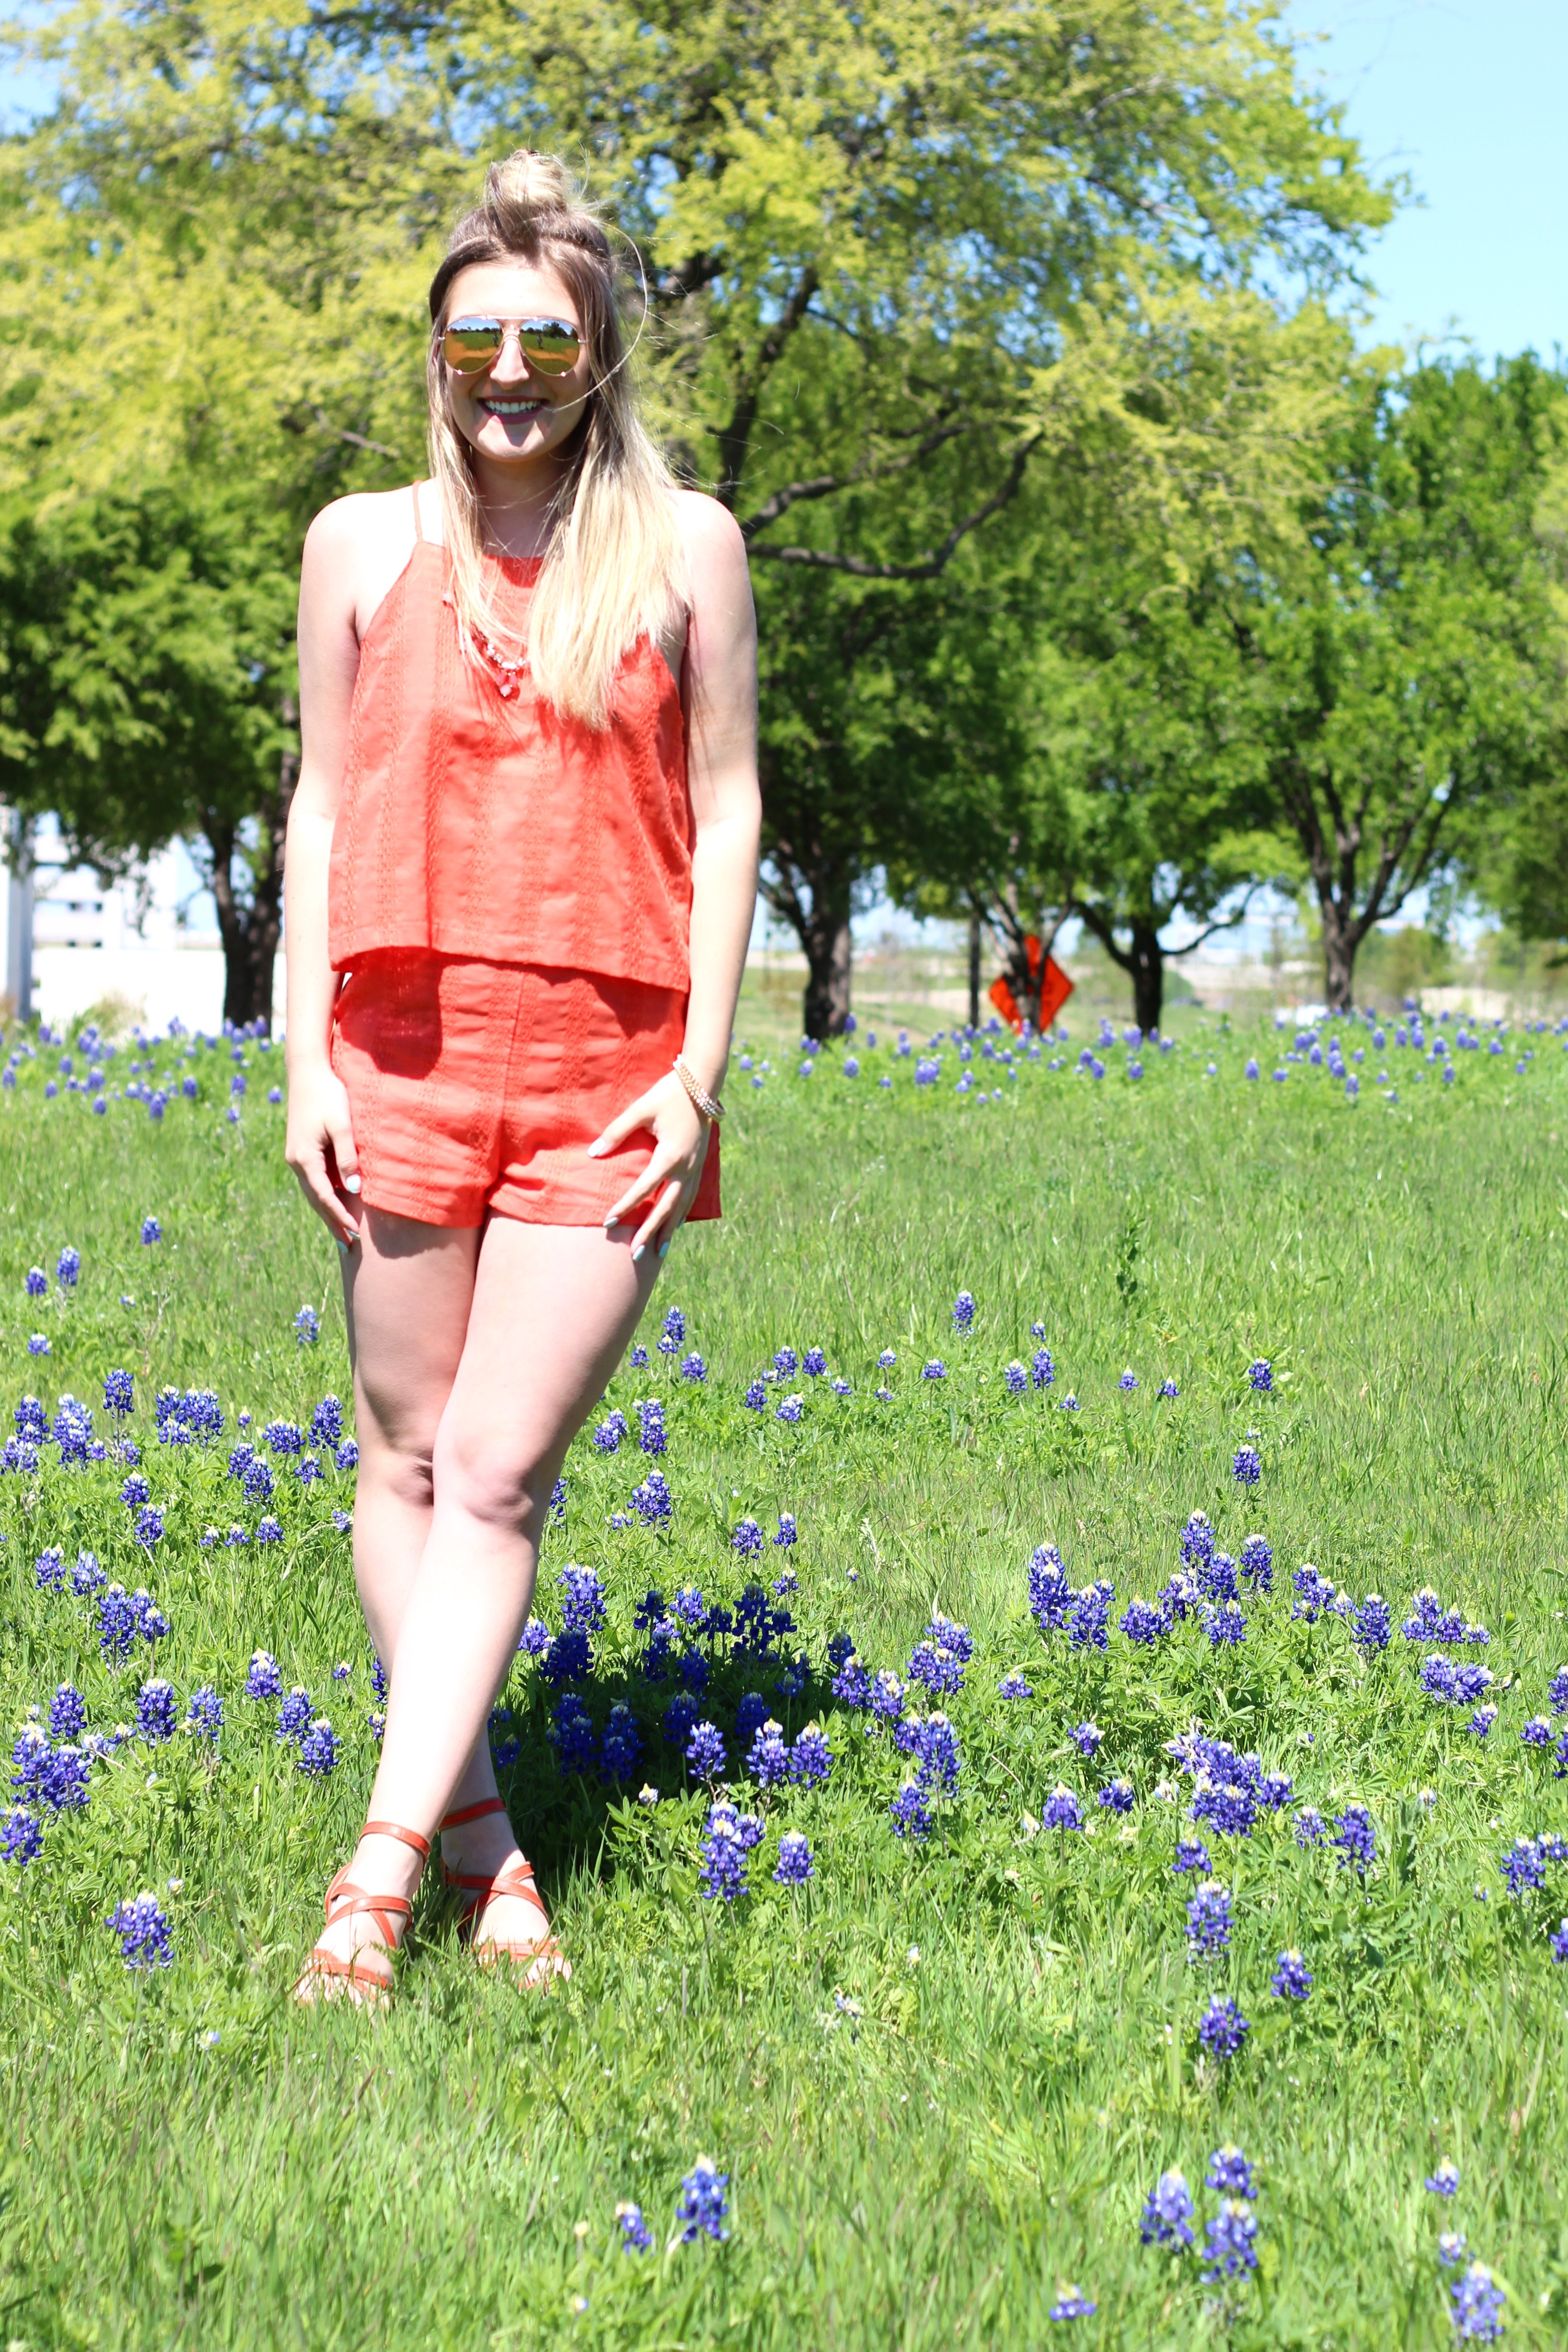 blue bonnets in texas in an orange outfit